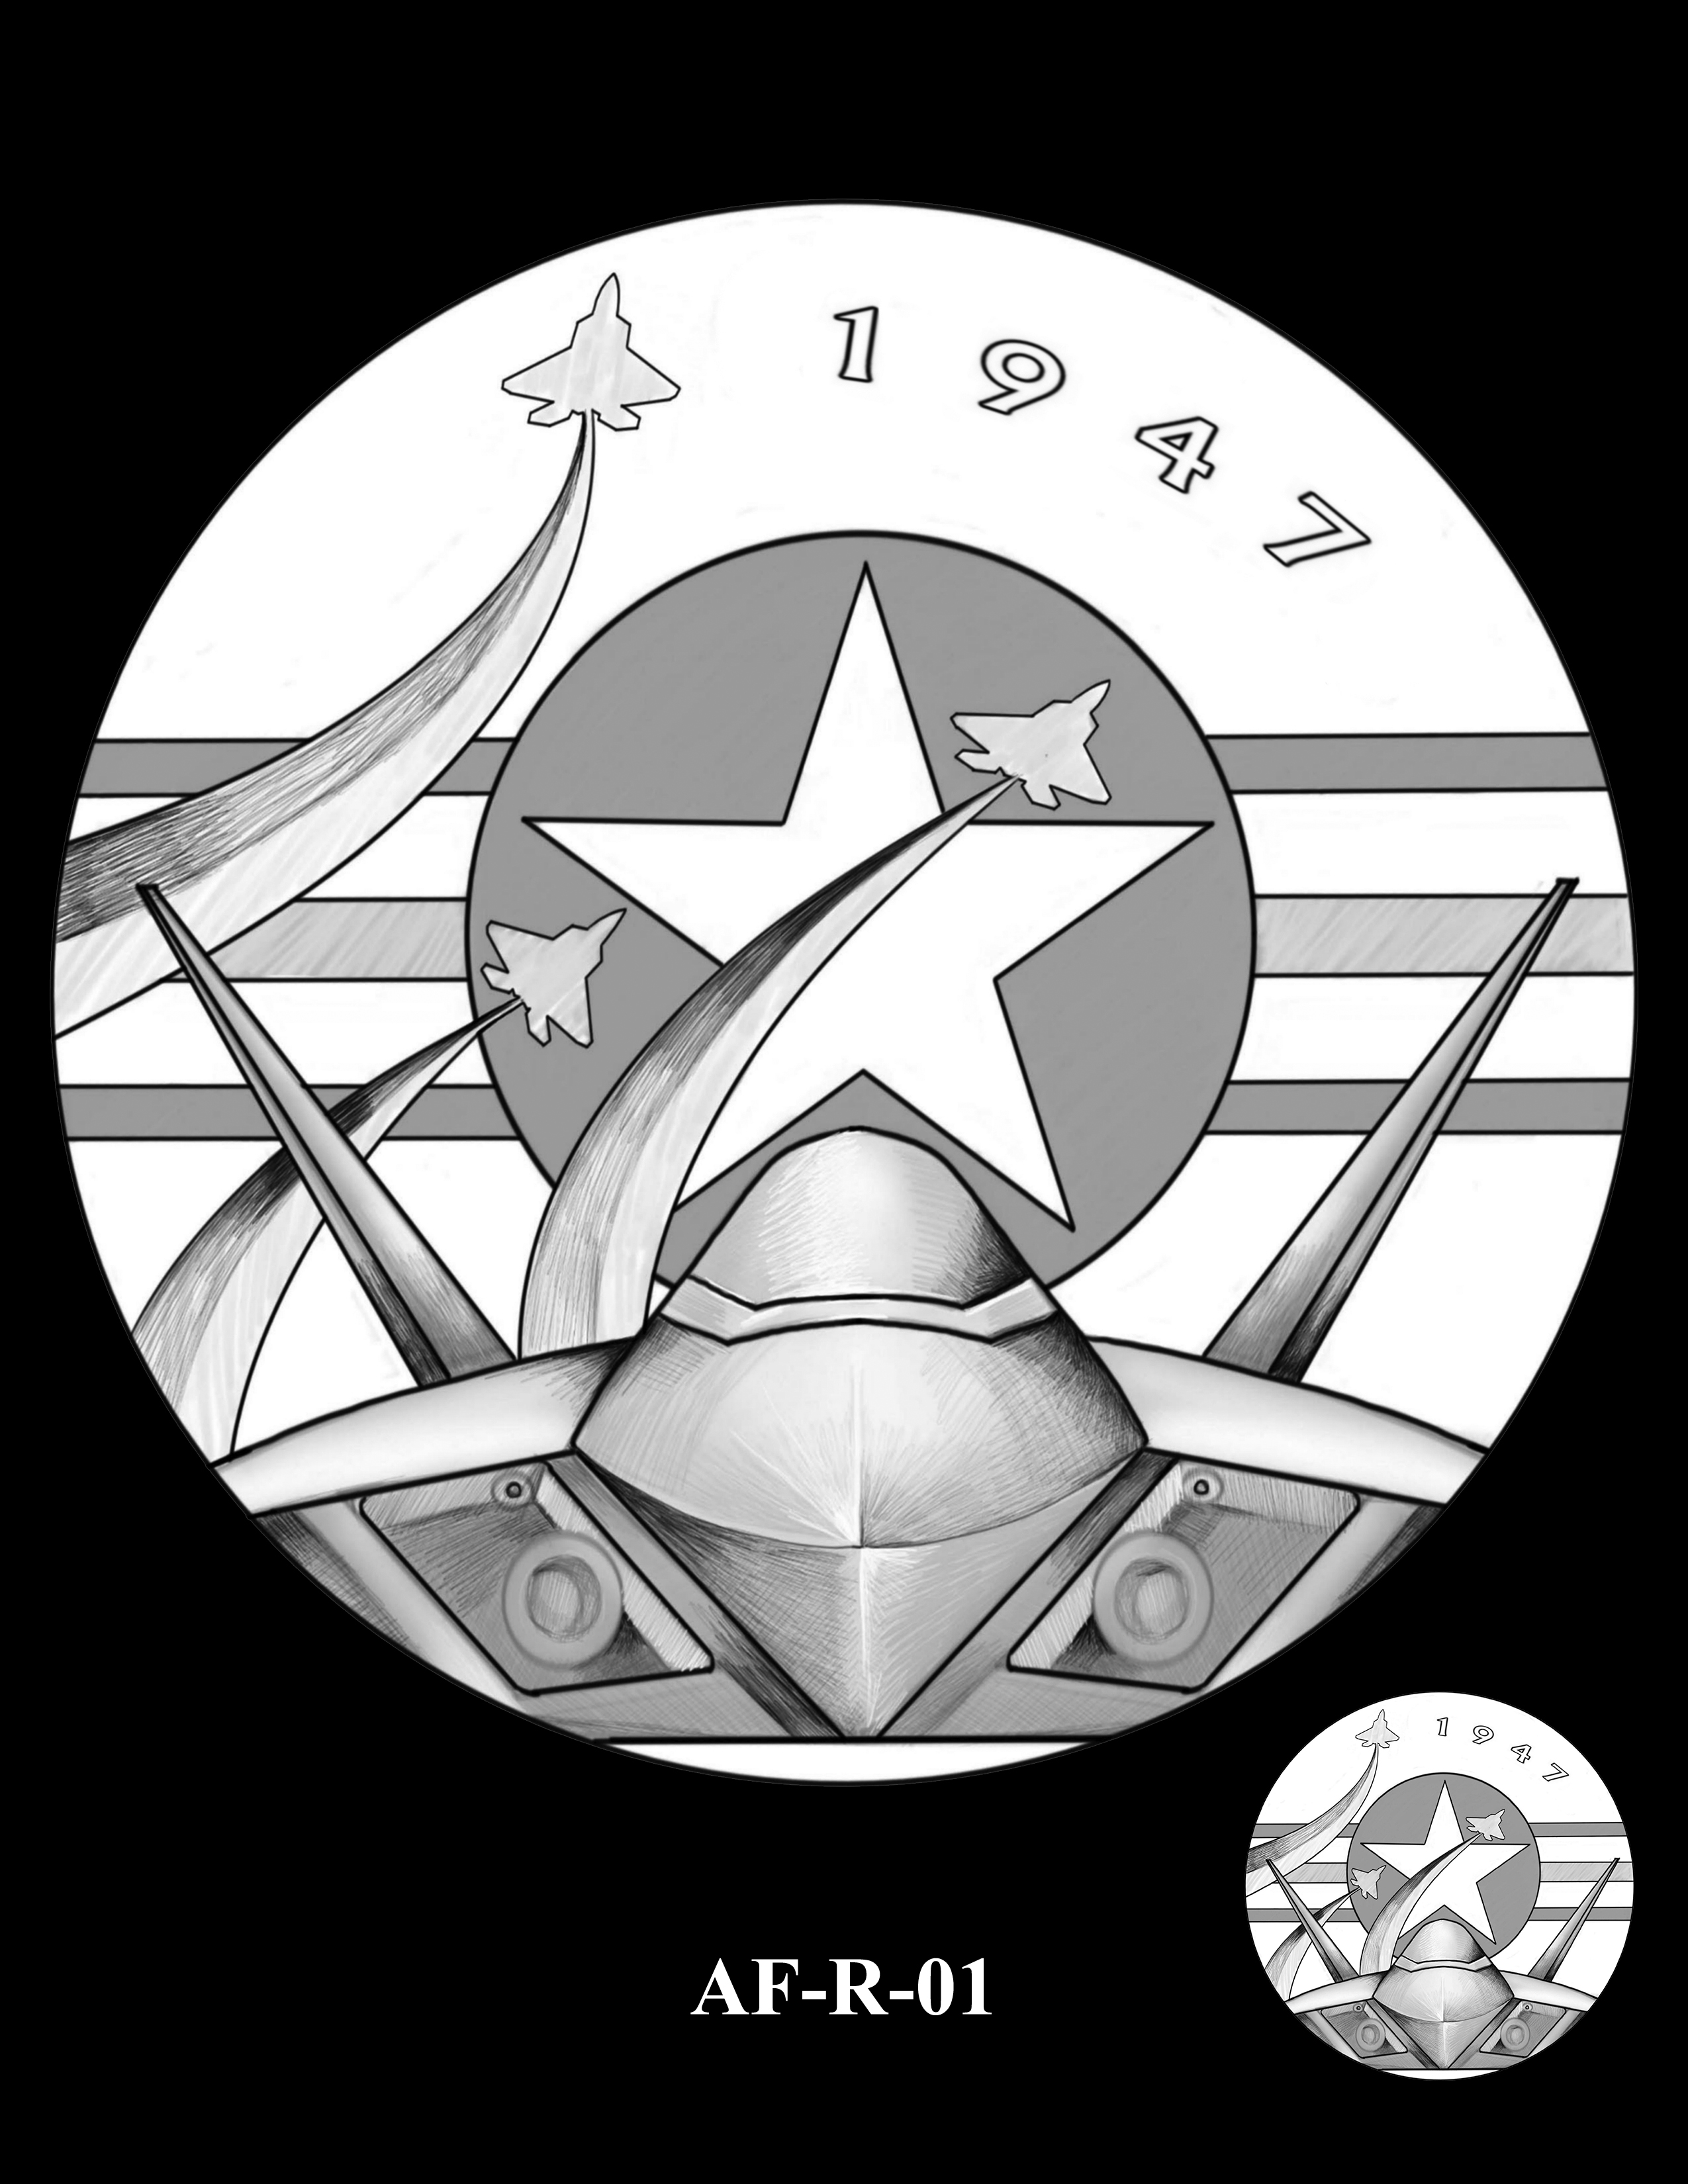 AF-R-01 -- Armed Forces Medal - Air Force